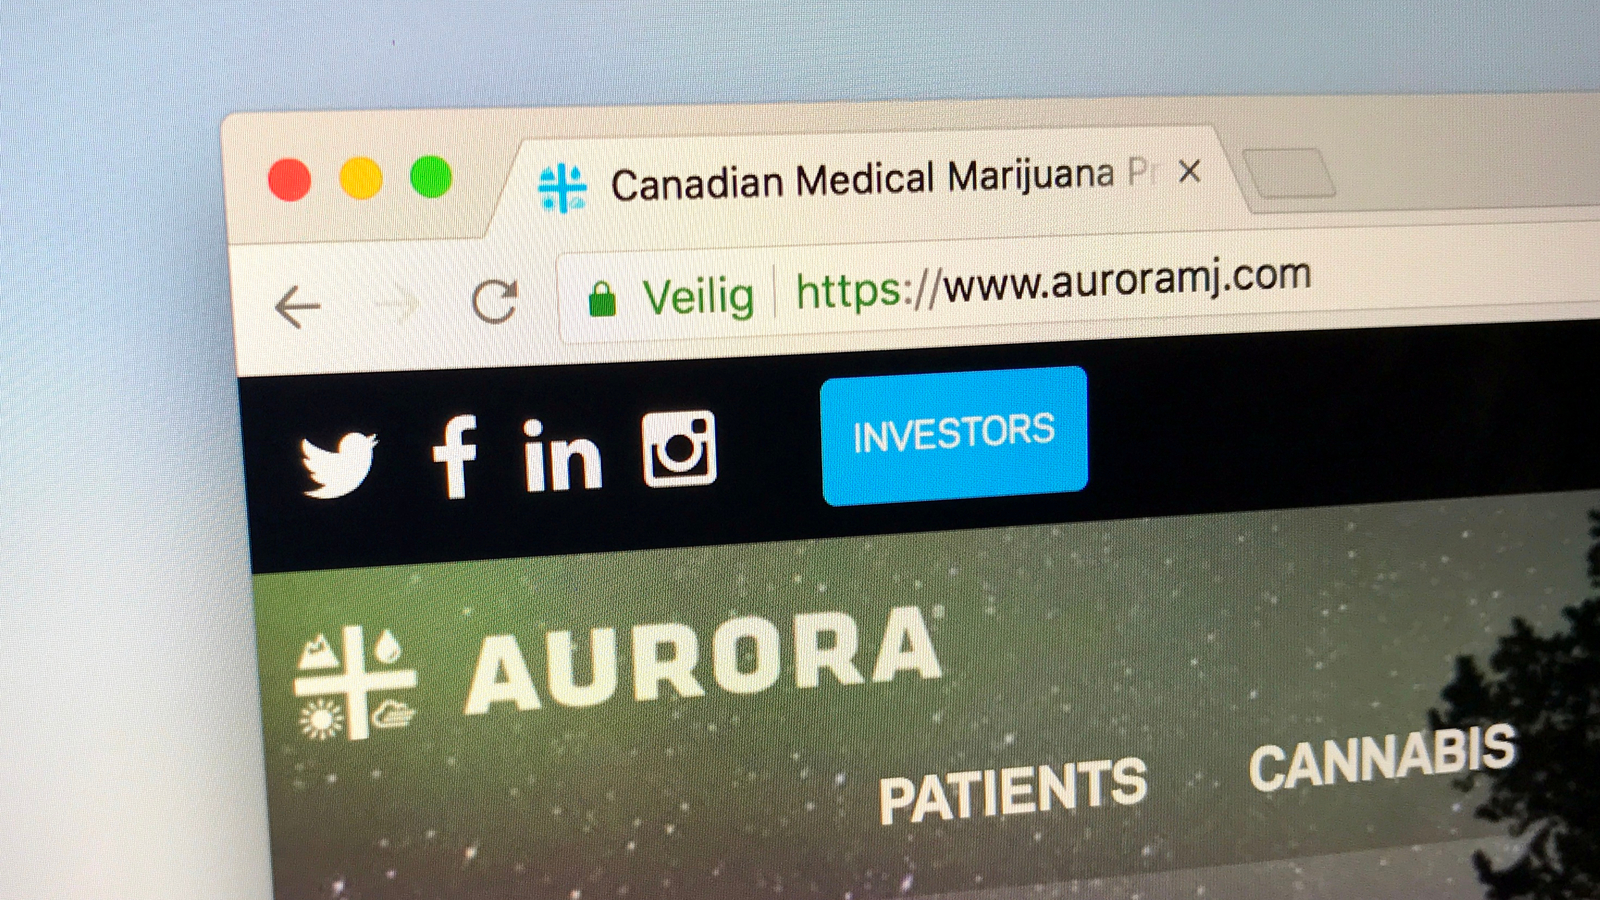 Why The Decline in ACB Stock Is a Problem for Aurora Cannabis Inc